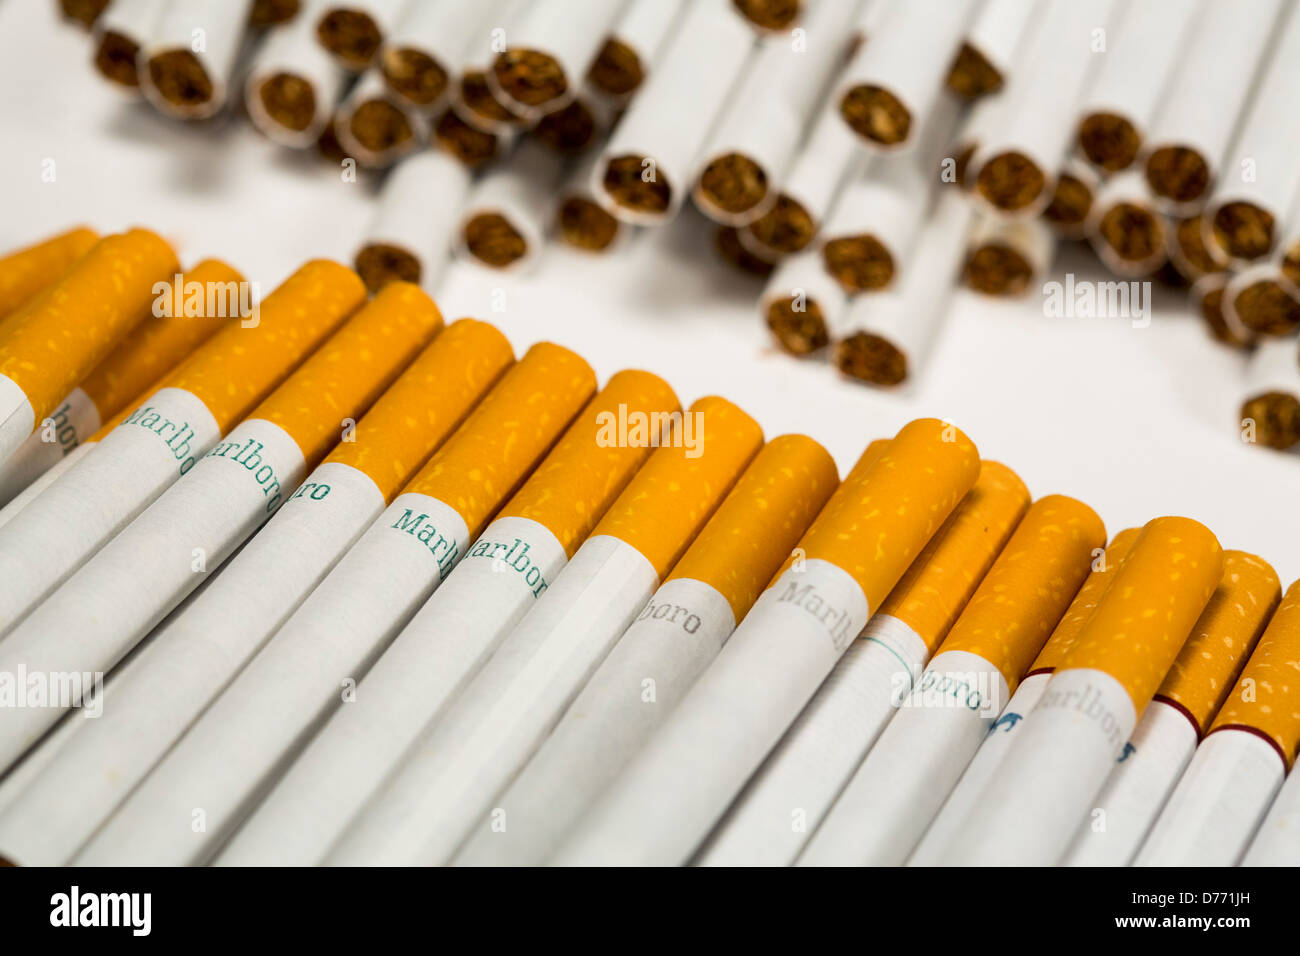 Buy wholesale cigarettes R1 Australia